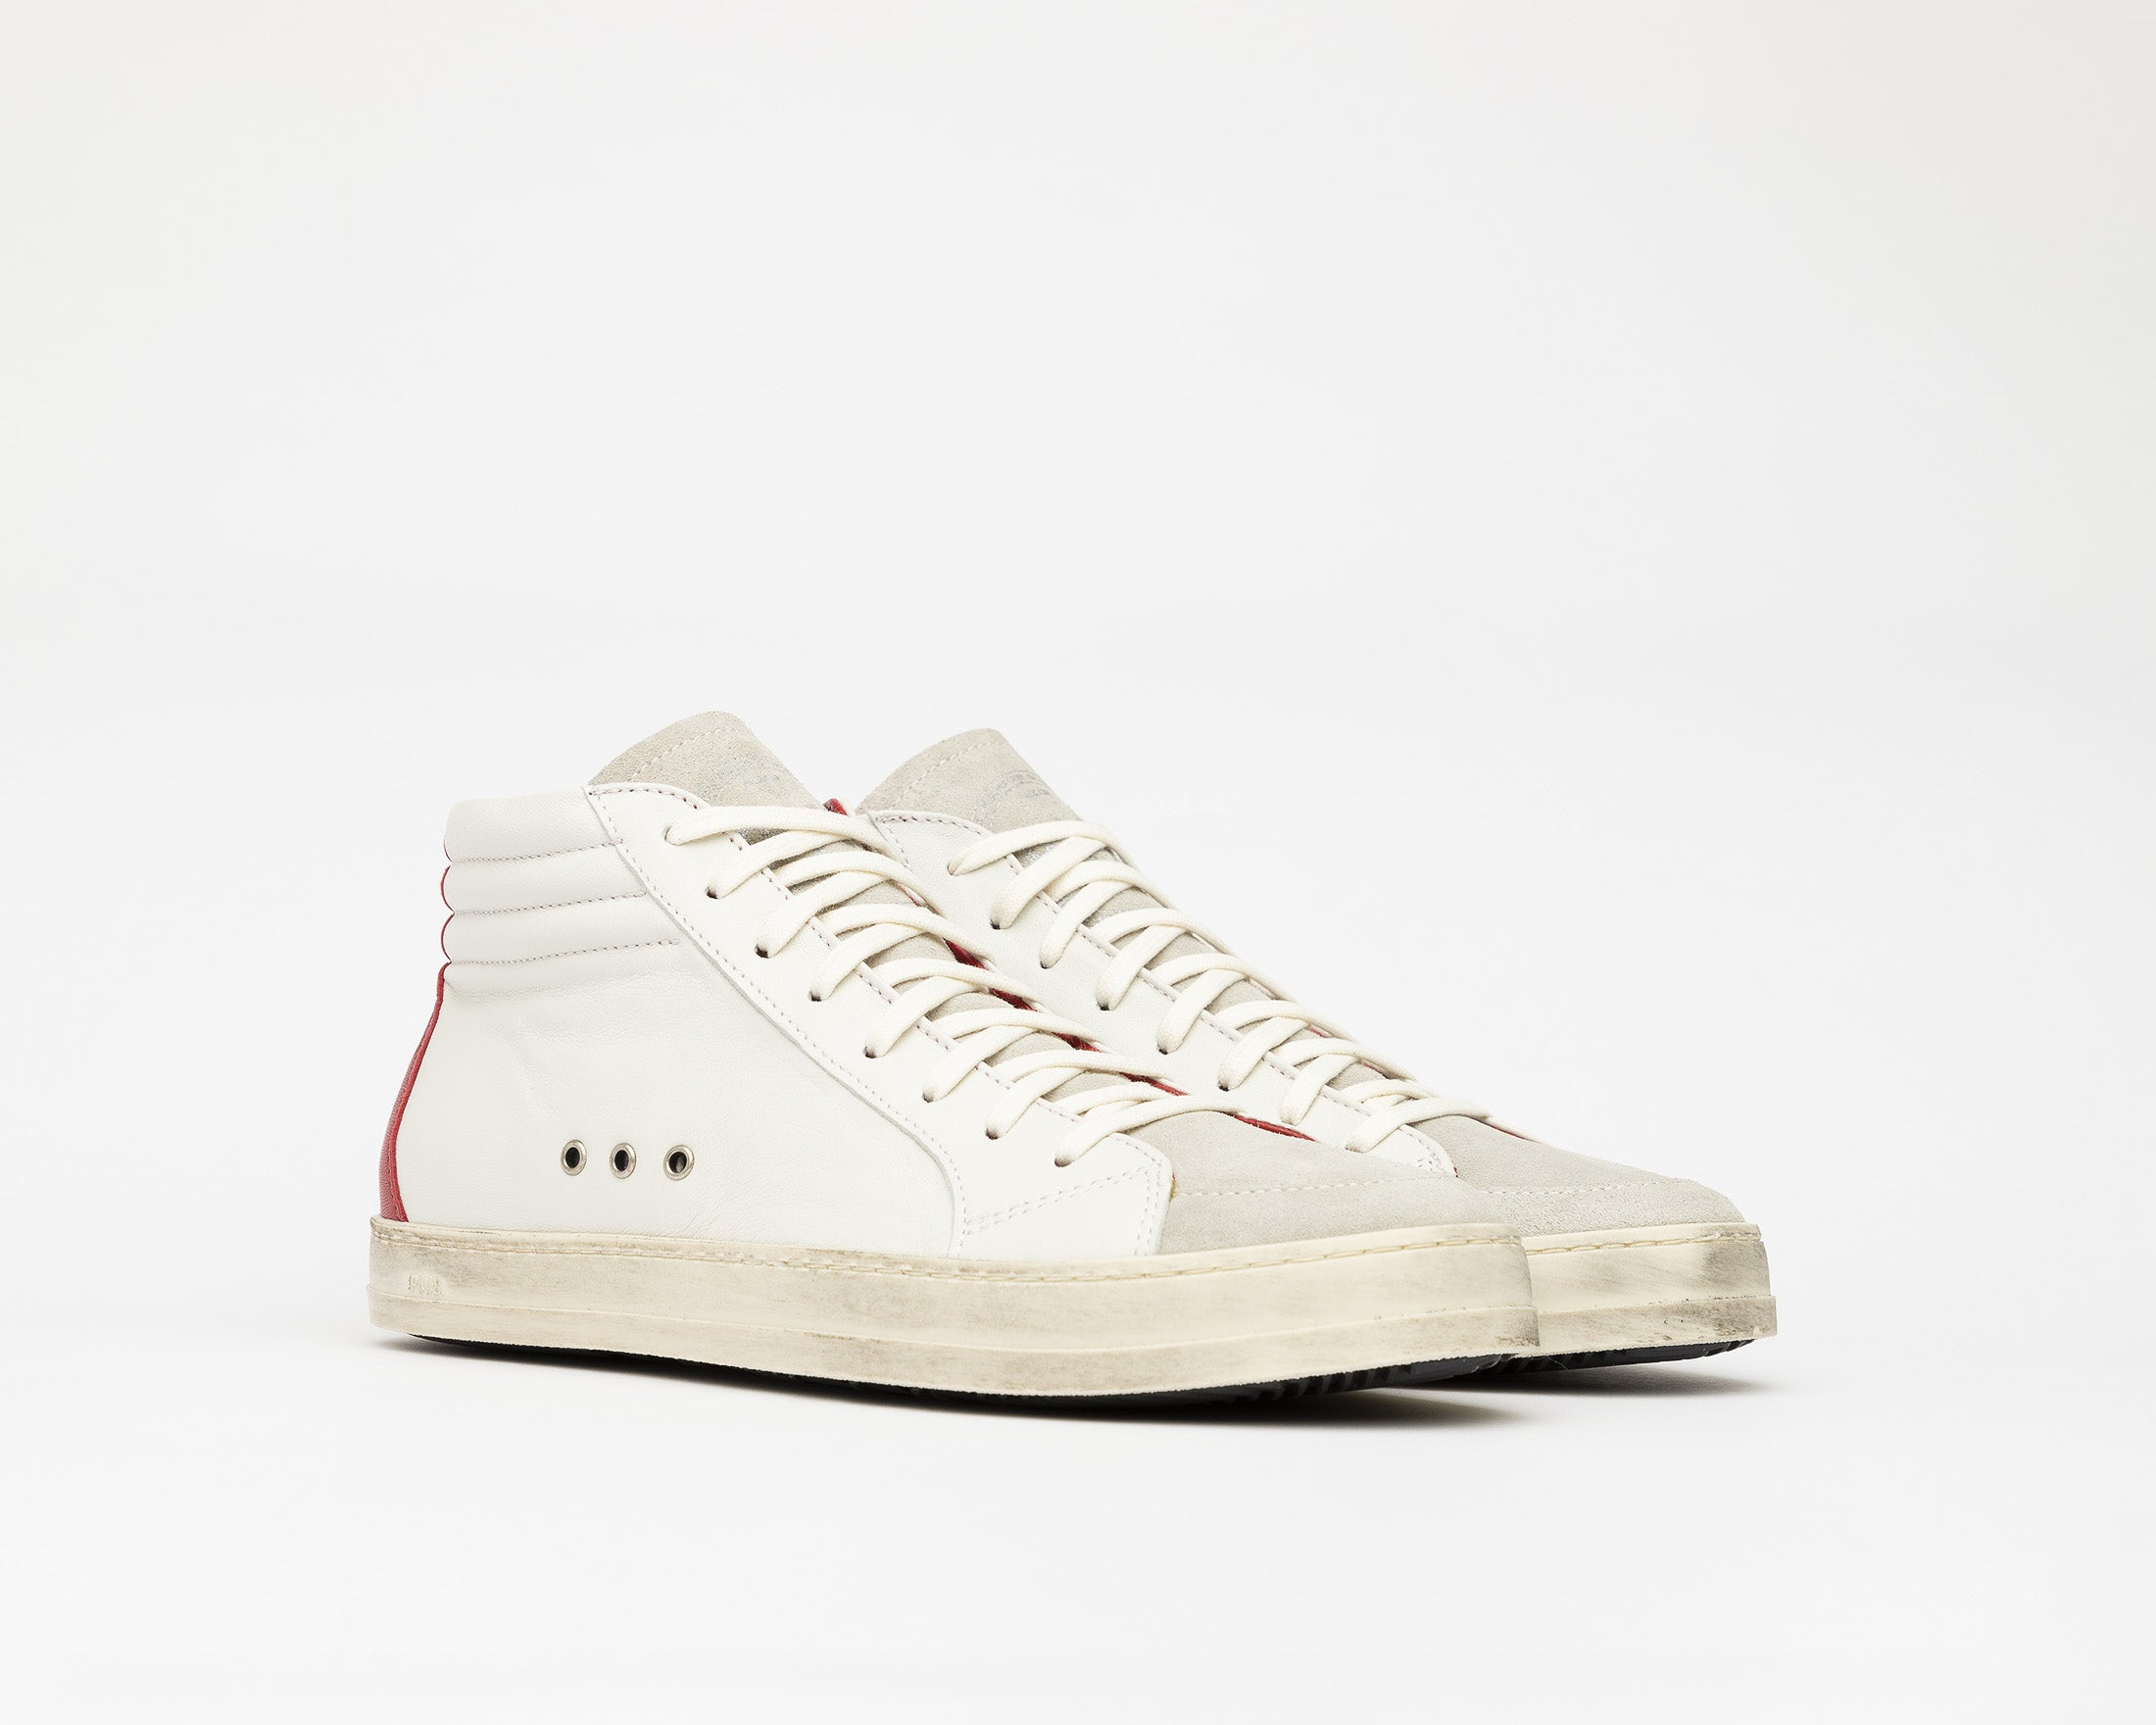 Skate Men's High-Top Sneaker Cream Red - Side